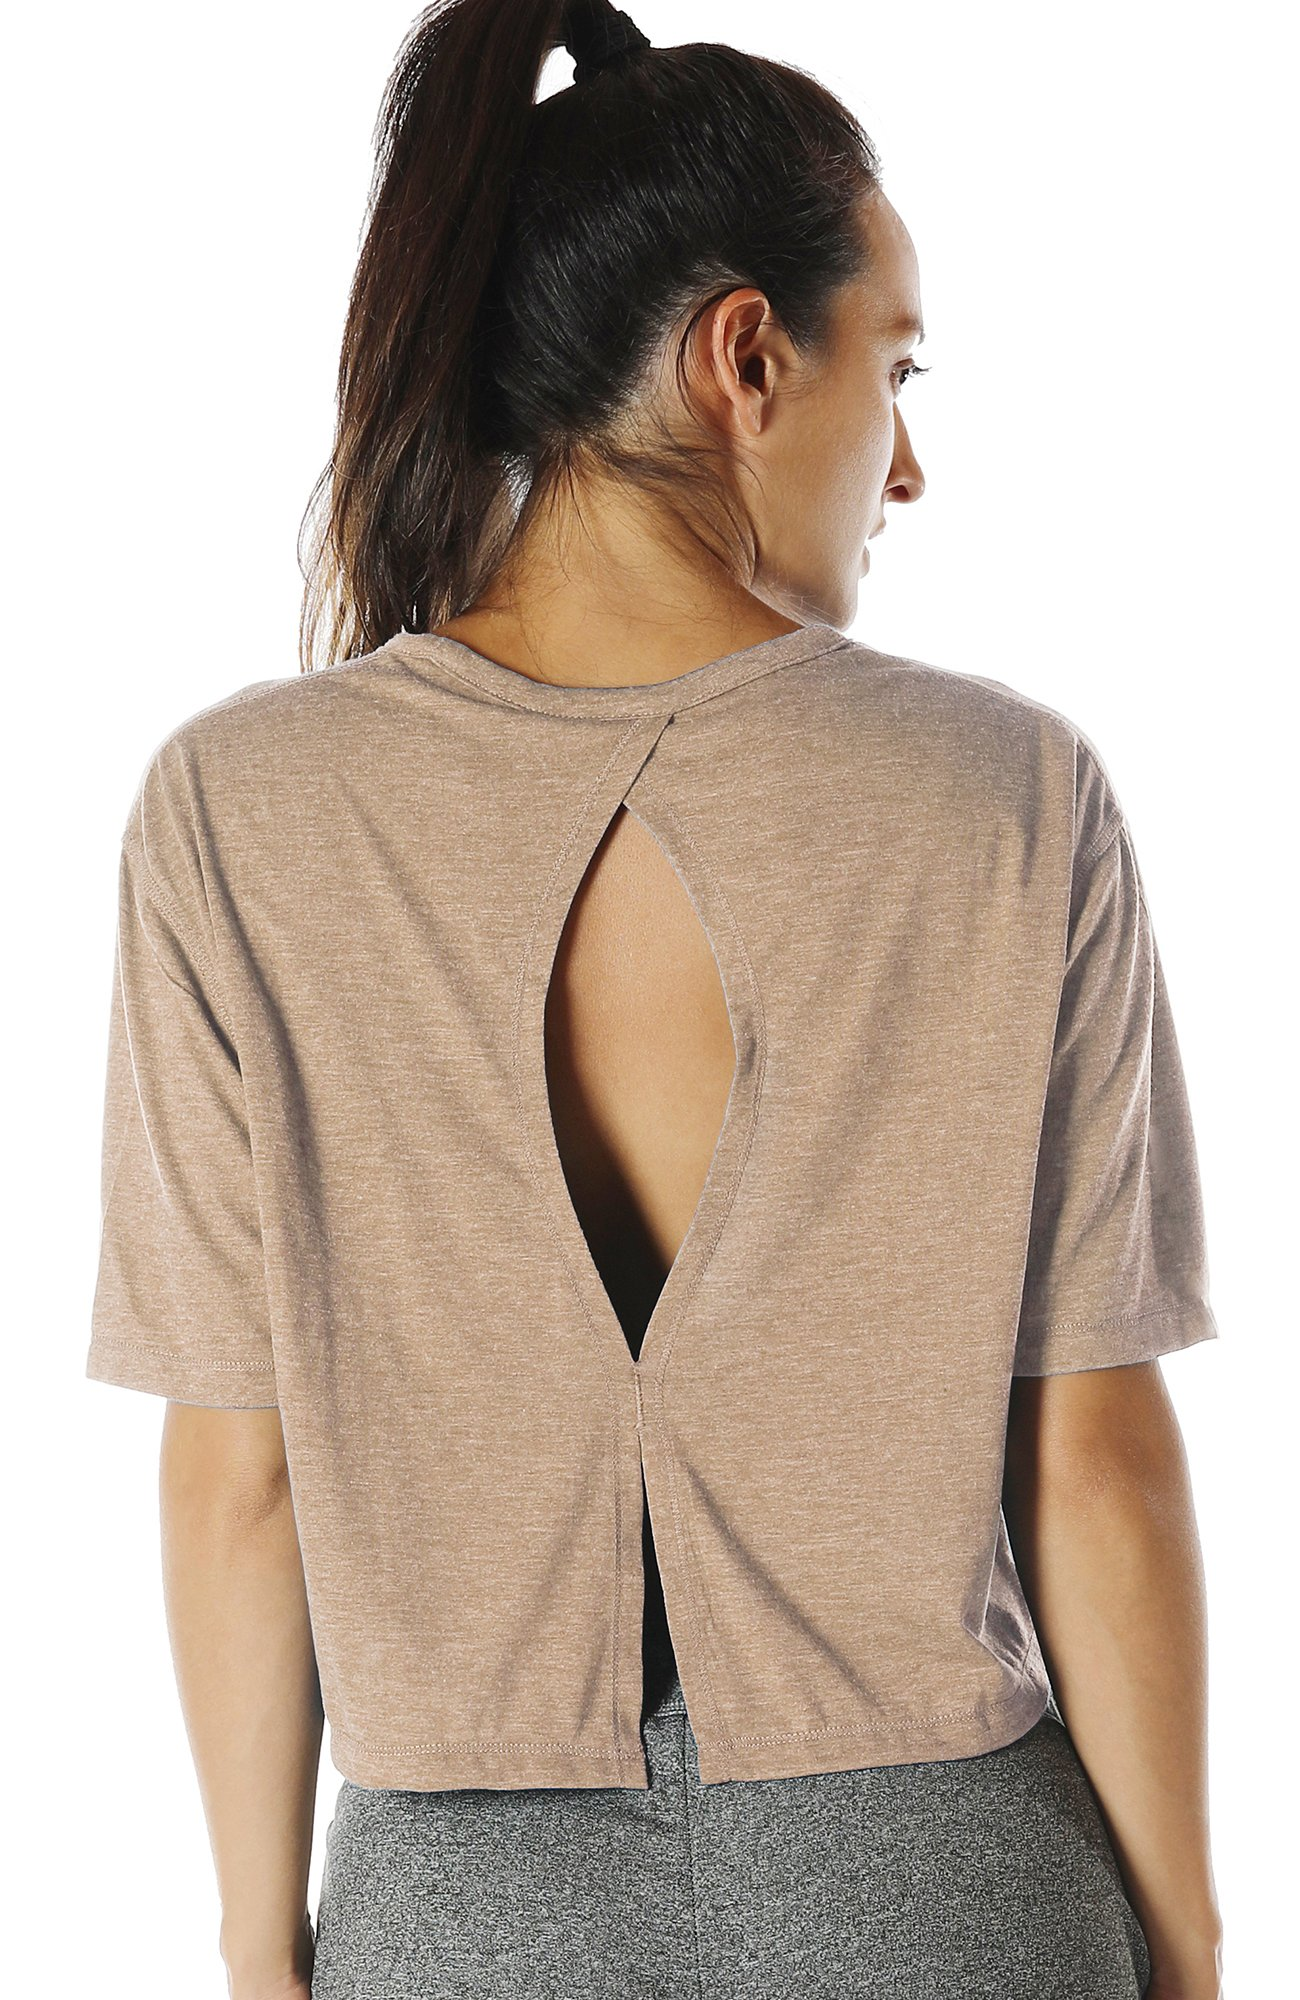 icyzone Open Back Workout Top Shirts - Yoga t-Shirts Activewear Exercise Crop Tops for Women (M, Beige)